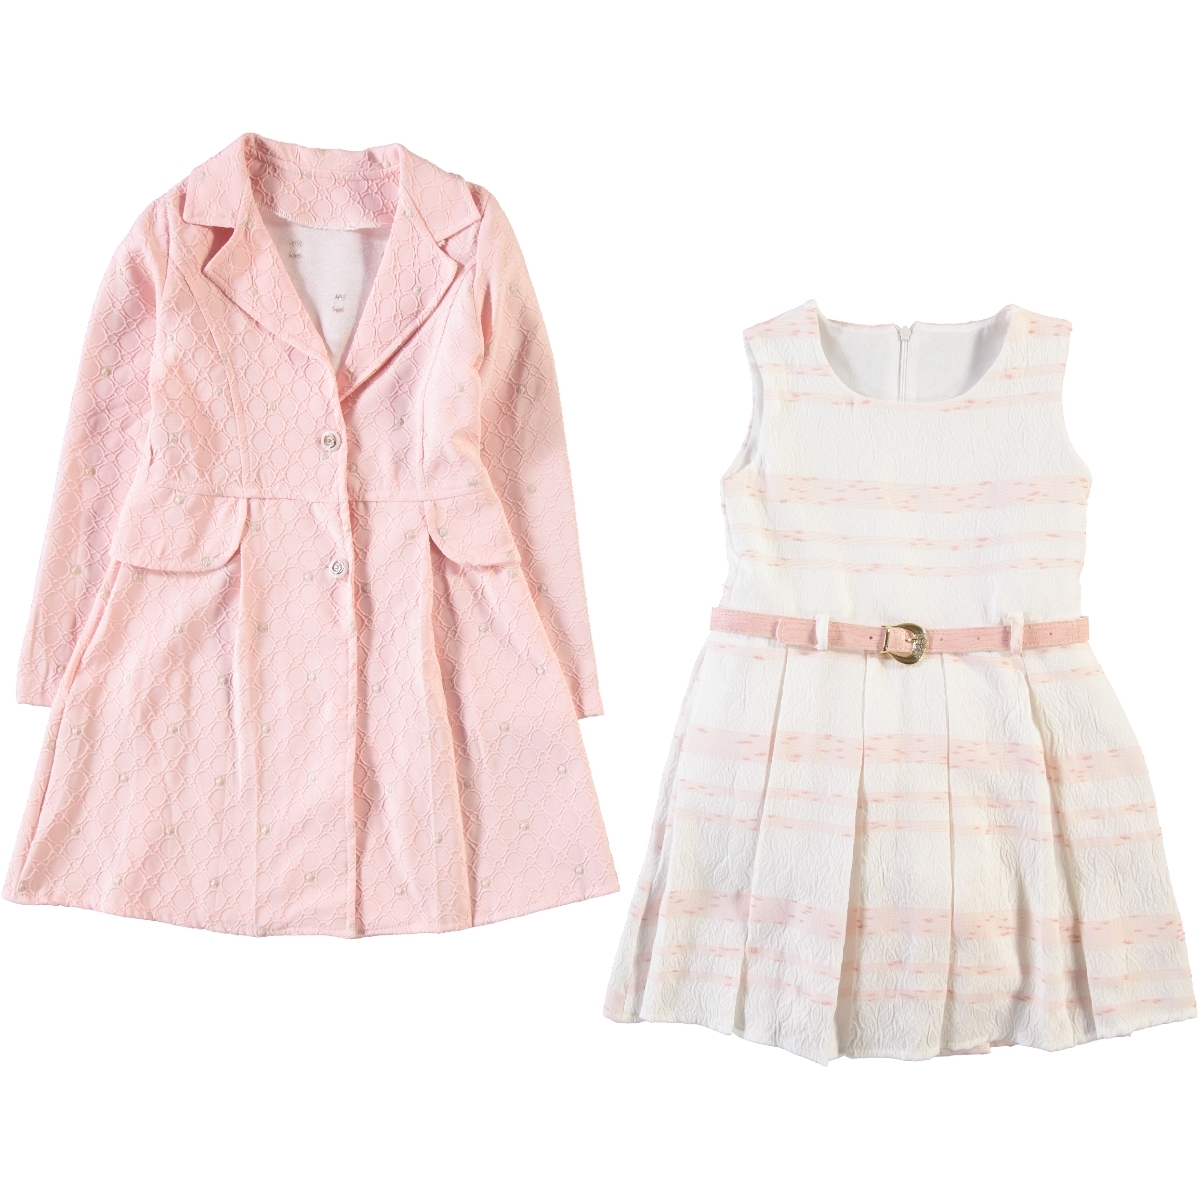 Civil Girls Powder Pink Dress Girl Child Ages 4-8